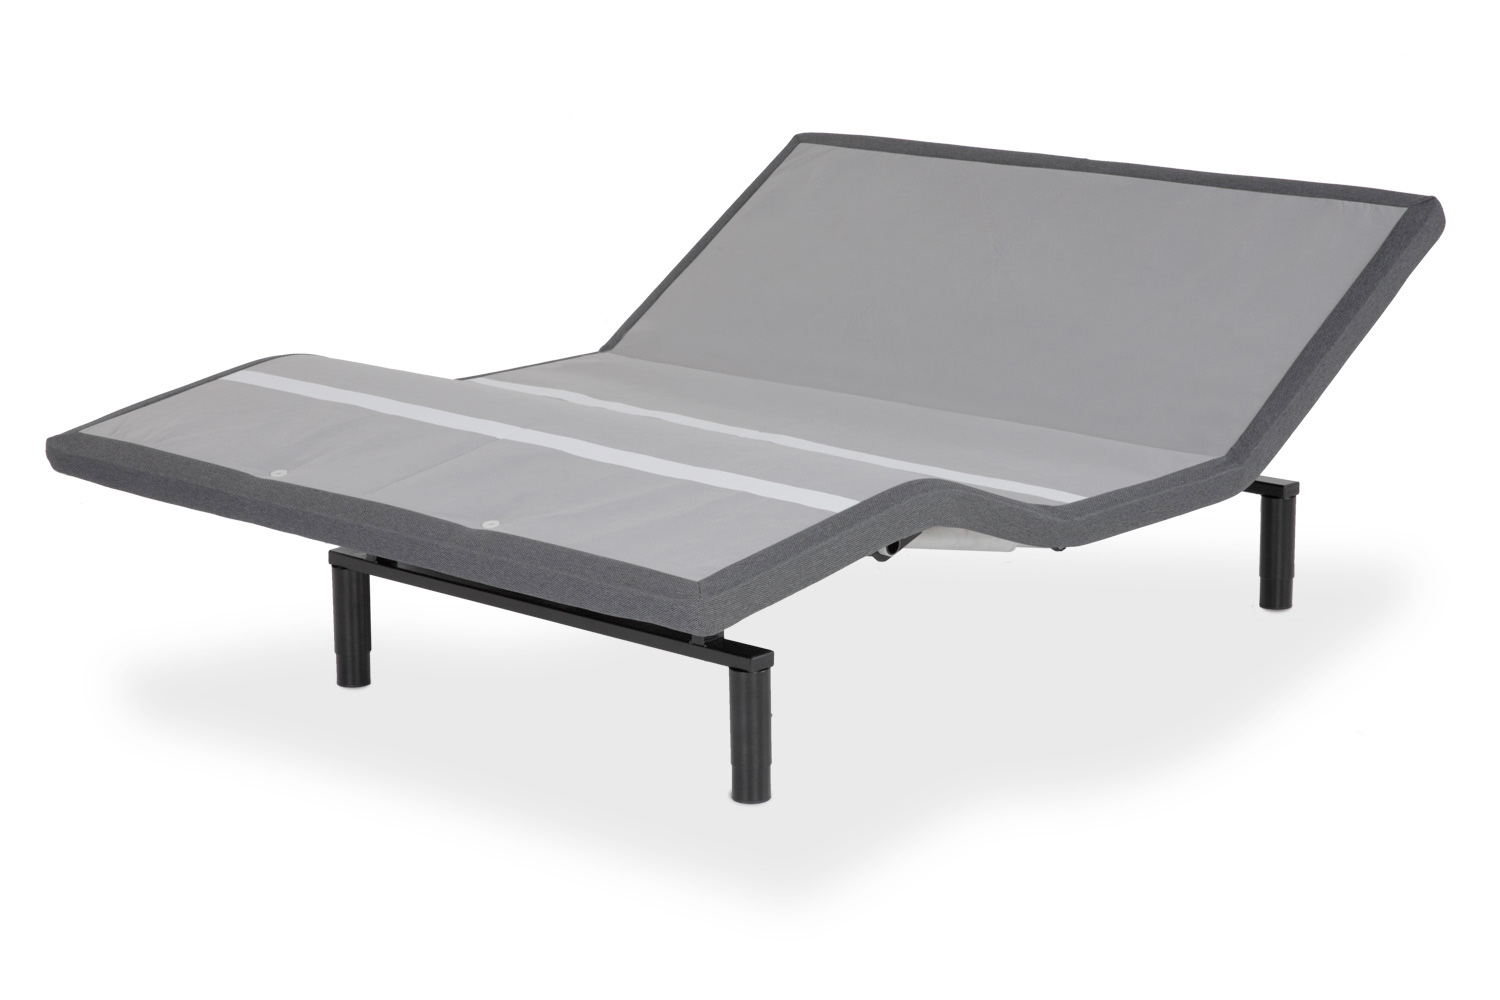 san diego adjustable bed motorized frame power base by leggett & platt